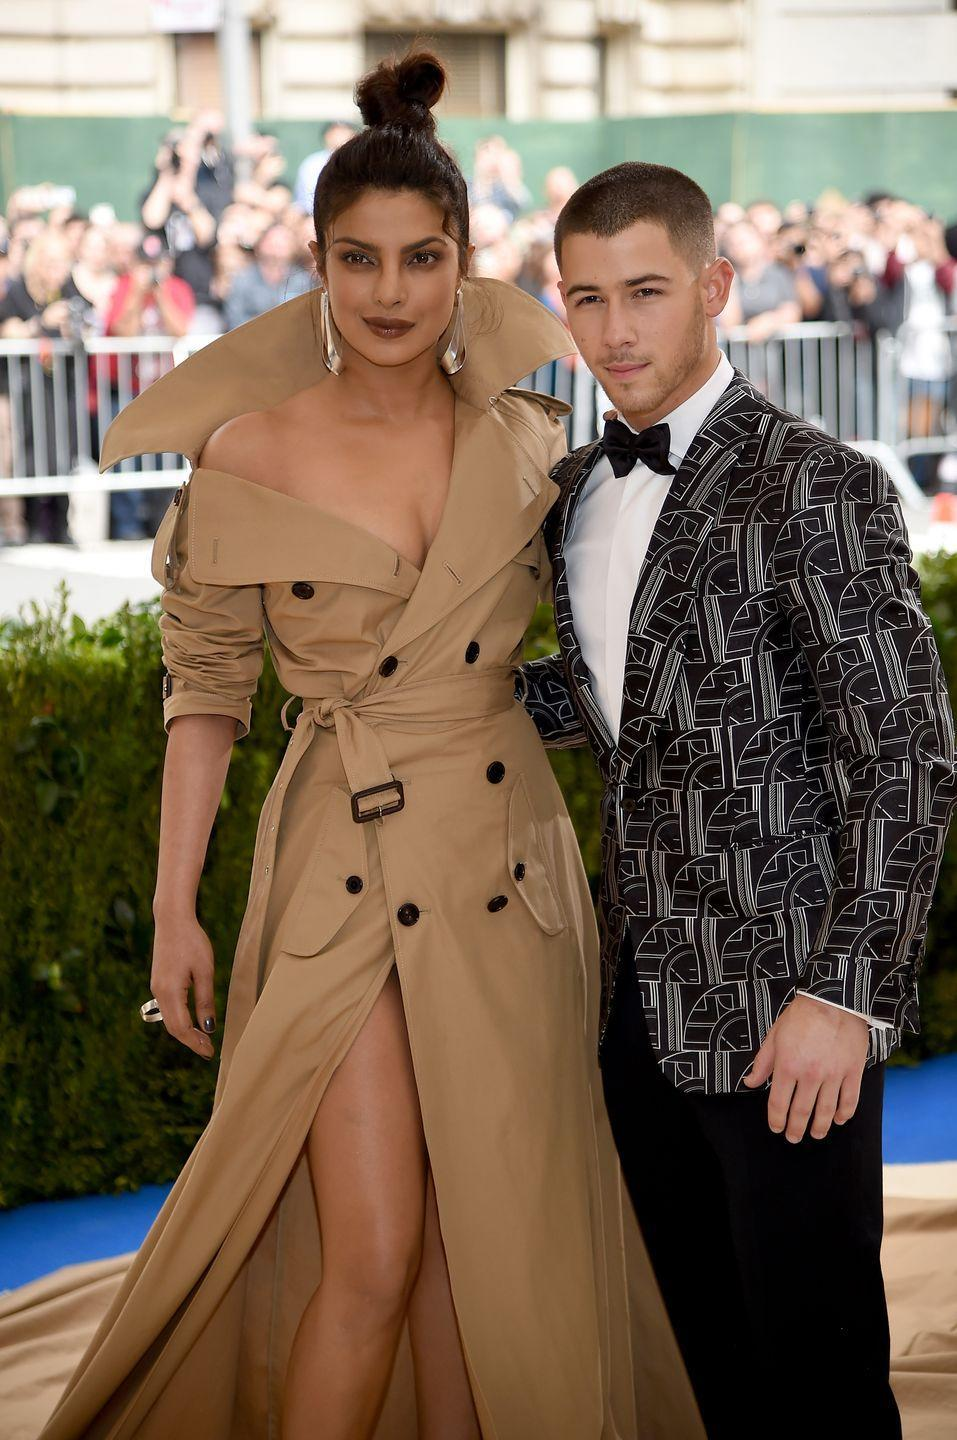 "<p>After two months of dating, Chopra and Jonas <a href=""https://www.harpersbazaar.com/celebrity/latest/a22572681/nick-jonas-priyanka-chopra-engaged/"" rel=""nofollow noopener"" target=""_blank"" data-ylk=""slk:became engaged"" class=""link rapid-noclick-resp"">became engaged</a> in July 2018. The couple then held a lavish <a href=""https://www.harpersbazaar.com/celebrity/latest/a25107771/priyanka-chopra-nick-jonas-wedding-details/"" rel=""nofollow noopener"" target=""_blank"" data-ylk=""slk:wedding"" class=""link rapid-noclick-resp"">wedding</a> in December of that year, complete with two ceremonies and multiple celebrations in India. While many fans noted their age difference, the couple couldn't care less. ""The age difference is not a big deal to them whatsoever,"" a source close to Jonas told <em><a href=""https://people.com/music/nick-jonas-loves-priyanka-chopra-older-mature/"" rel=""nofollow noopener"" target=""_blank"" data-ylk=""slk:People"" class=""link rapid-noclick-resp"">People</a></em>. In fact, Jonas reportedly is a fan of the age gap between him and Chopra. He ""loves dating older women, and if anything it makes Priyanka even more attractive to him,"" the source added. Jonas has ""always been very mature for his age"" and is ""an old soul.""</p>"